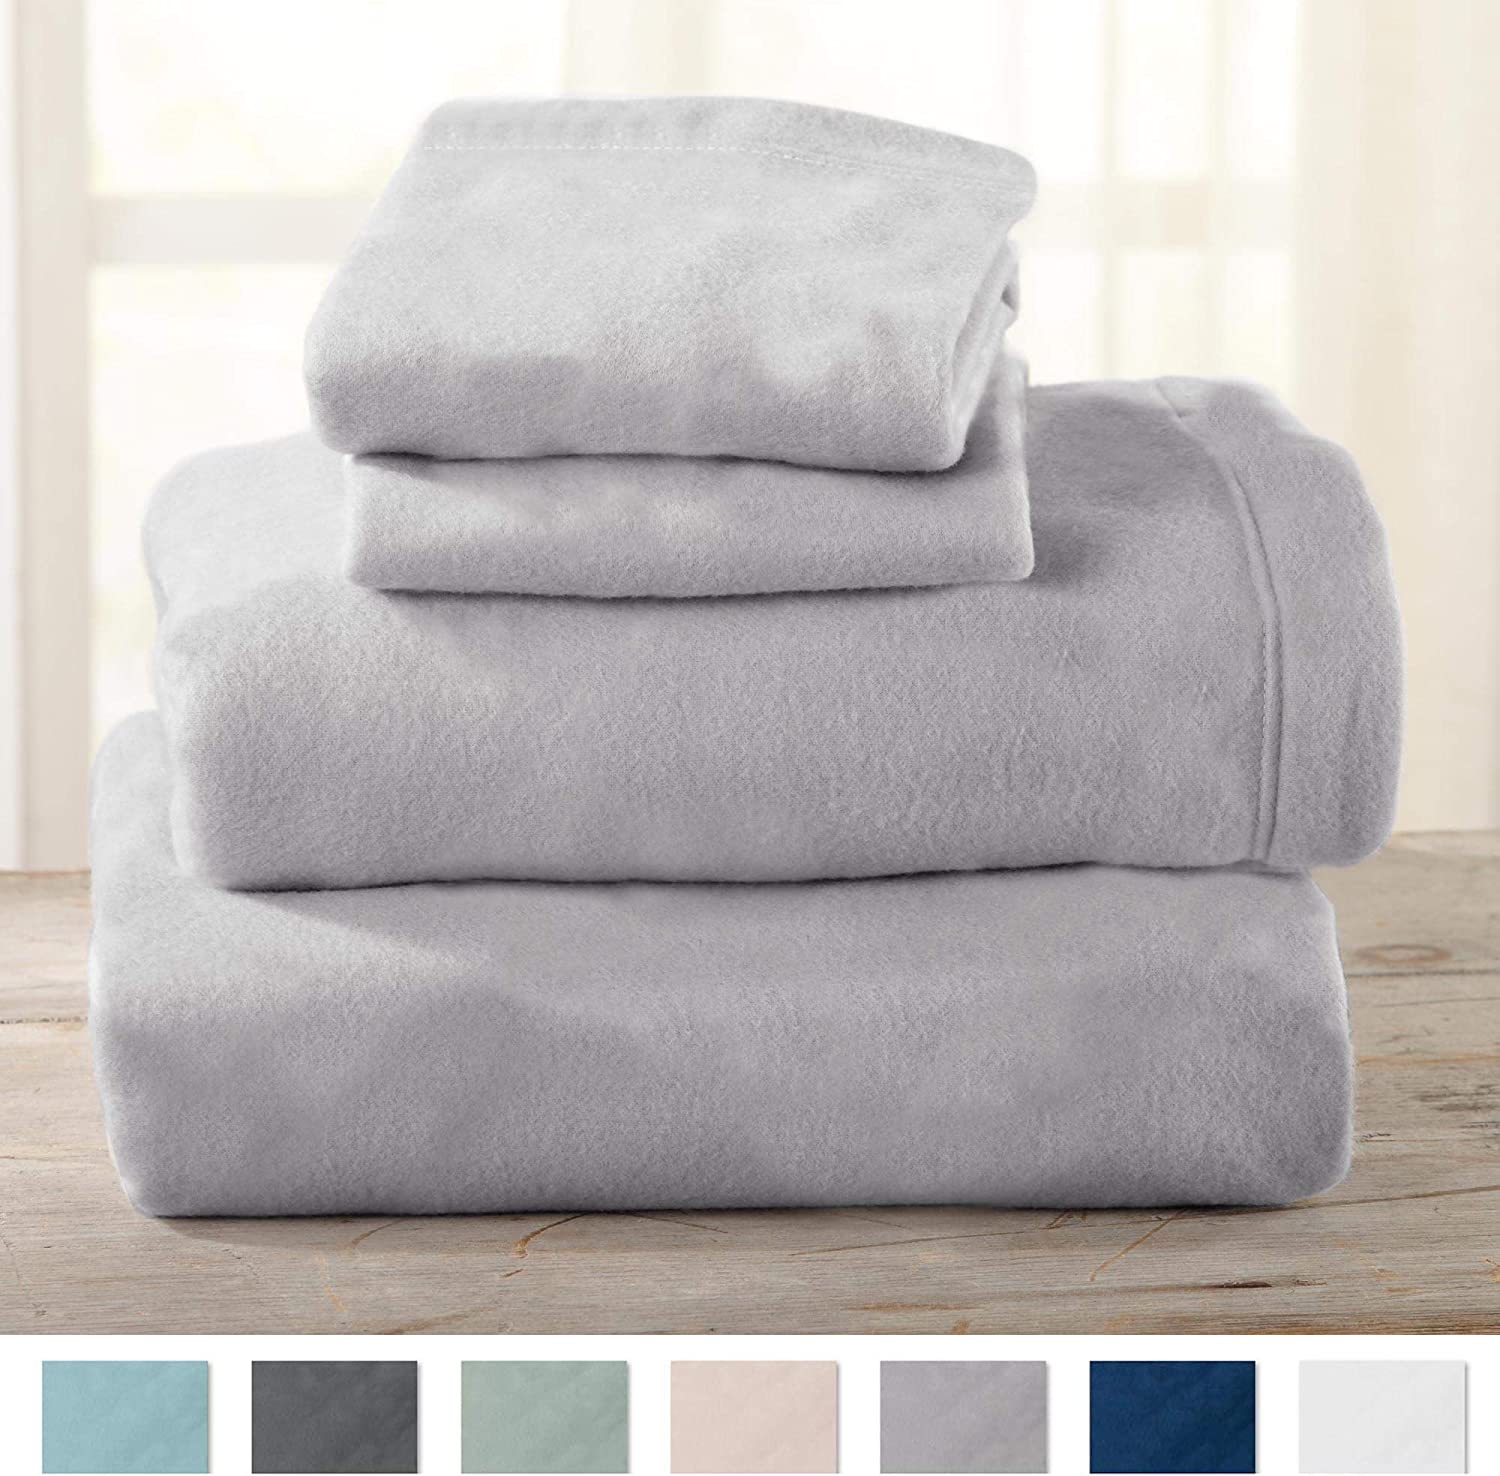 Home Fashion Designs Maya Collection Super Soft Extra Plush Fleece Sheet Set. Cozy, Warm, Durable, Smooth, Breathable Winter Sheets in Solid Colors (Queen, Paloma Grey)